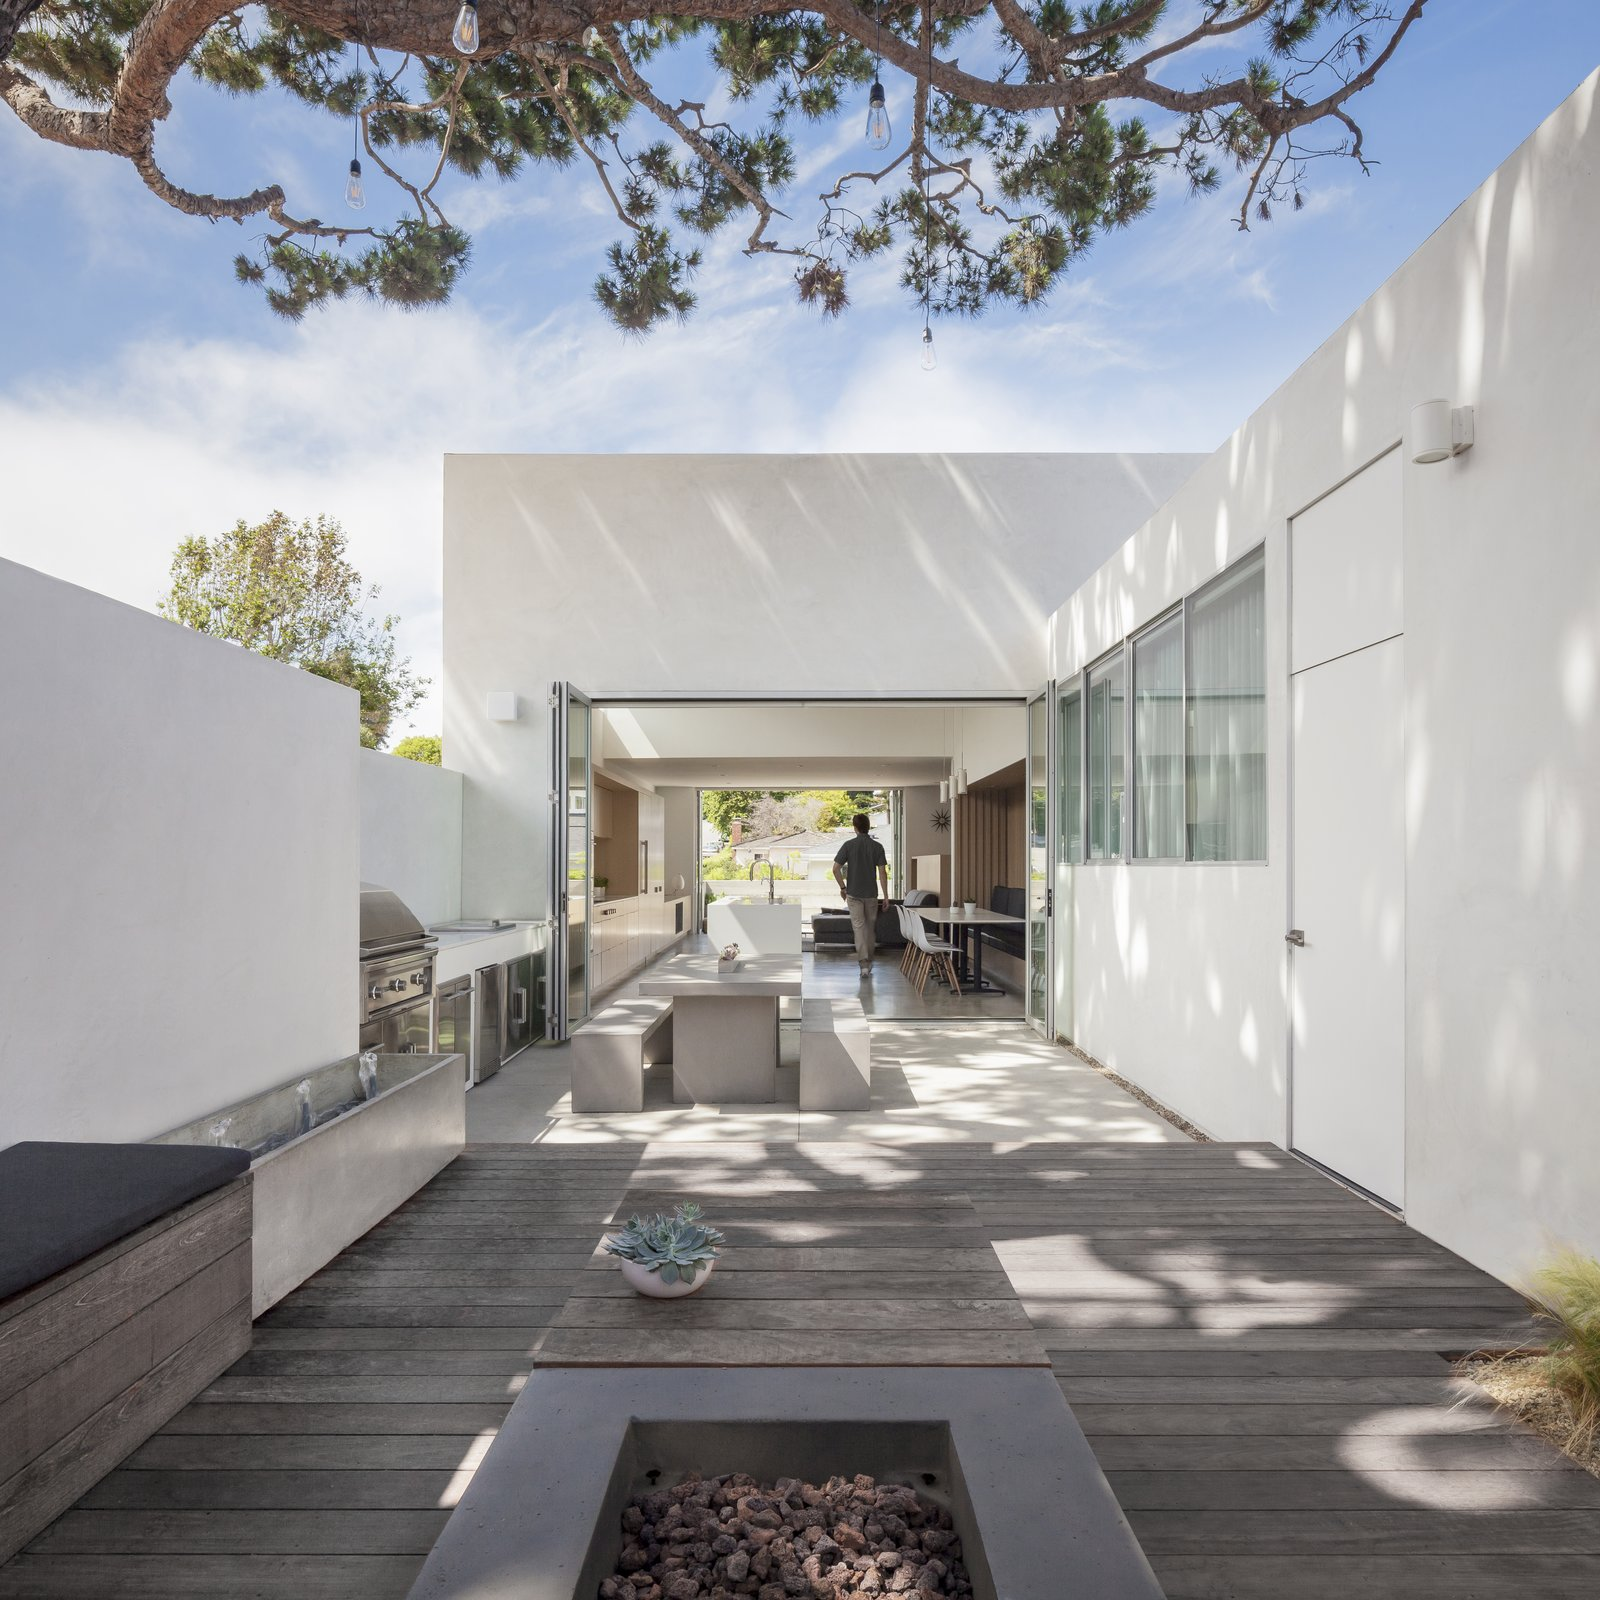 Outdoor, Trees, Wood Patio, Porch, Deck, Large Patio, Porch, Deck, Back Yard, Hanging Lighting, and Concrete Fences, Wall Edward Ogosta Architecture renovates and extends a Californian dwelling, creating a breezy, light-filled home for a family of five.   Best Photos from A Cramped Midcentury Bungalow Gets a Luminous New Addition